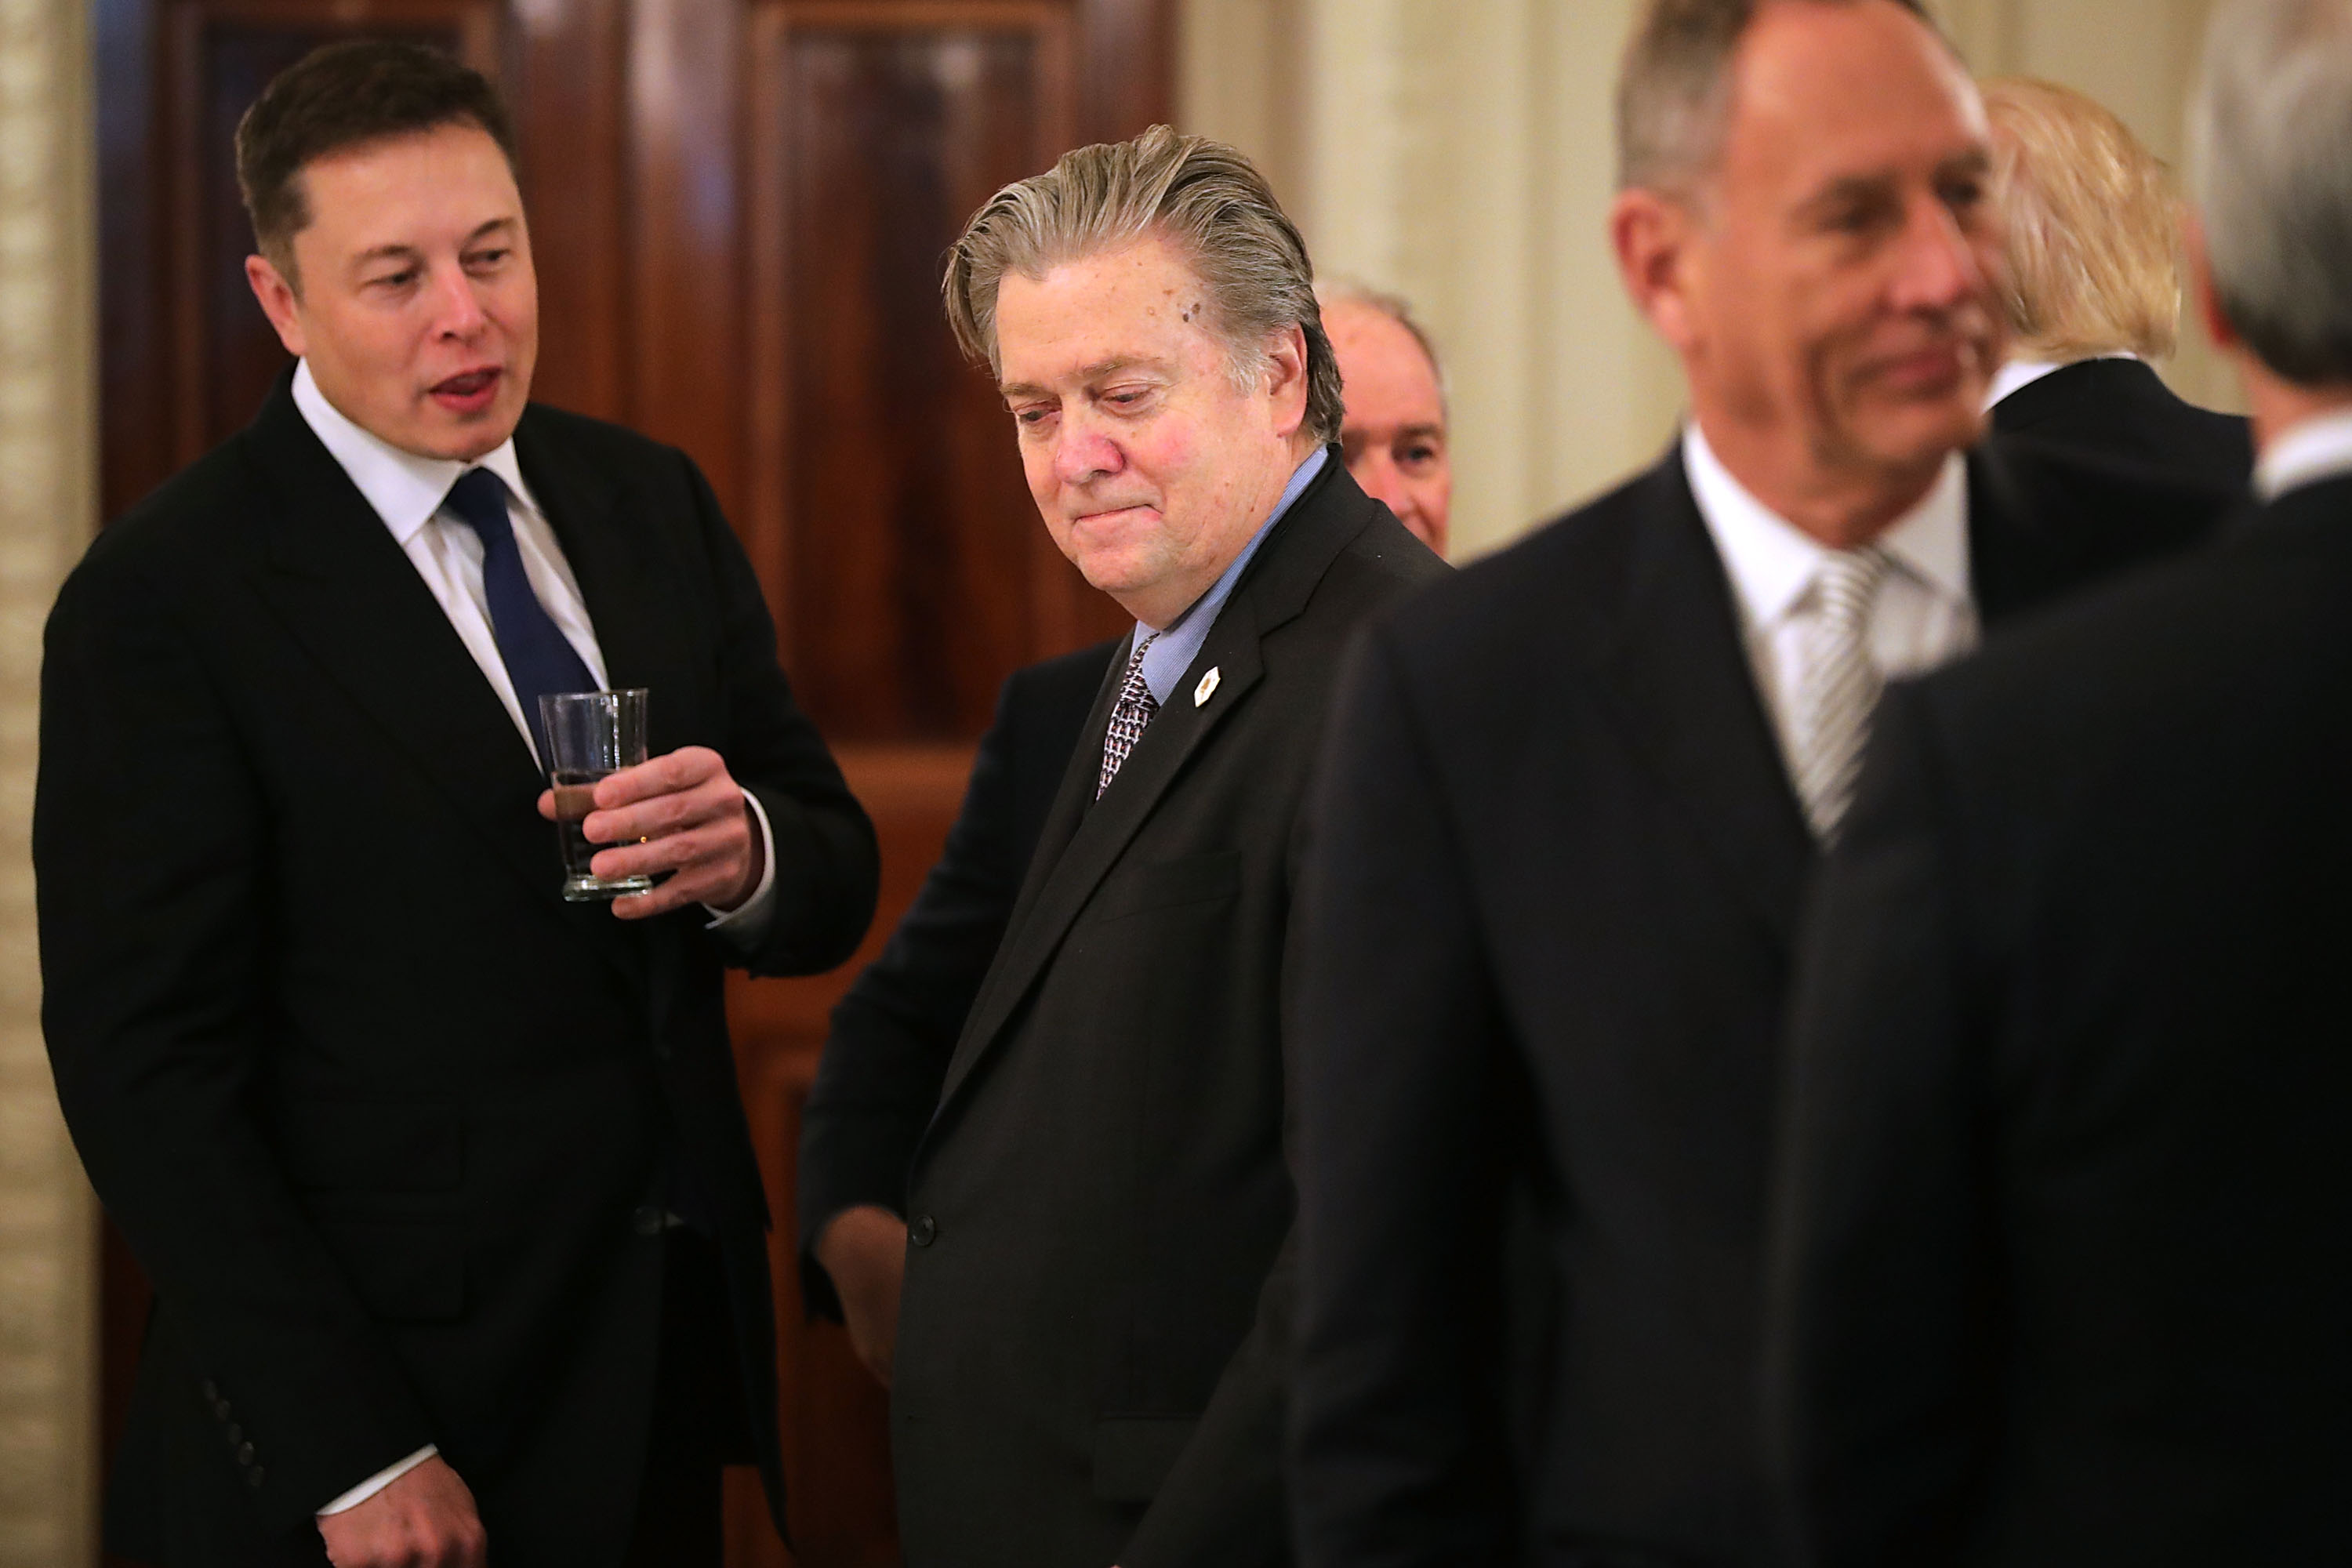 WASHINGTON DC- FEBRUARY 03 SpaceX and Tesla CEO Elon Musk talks with White House Chief Strategist Steve Bannon at the beginning of a policy forum with U.S. President Donald Trump in the State Dining Room at the White House